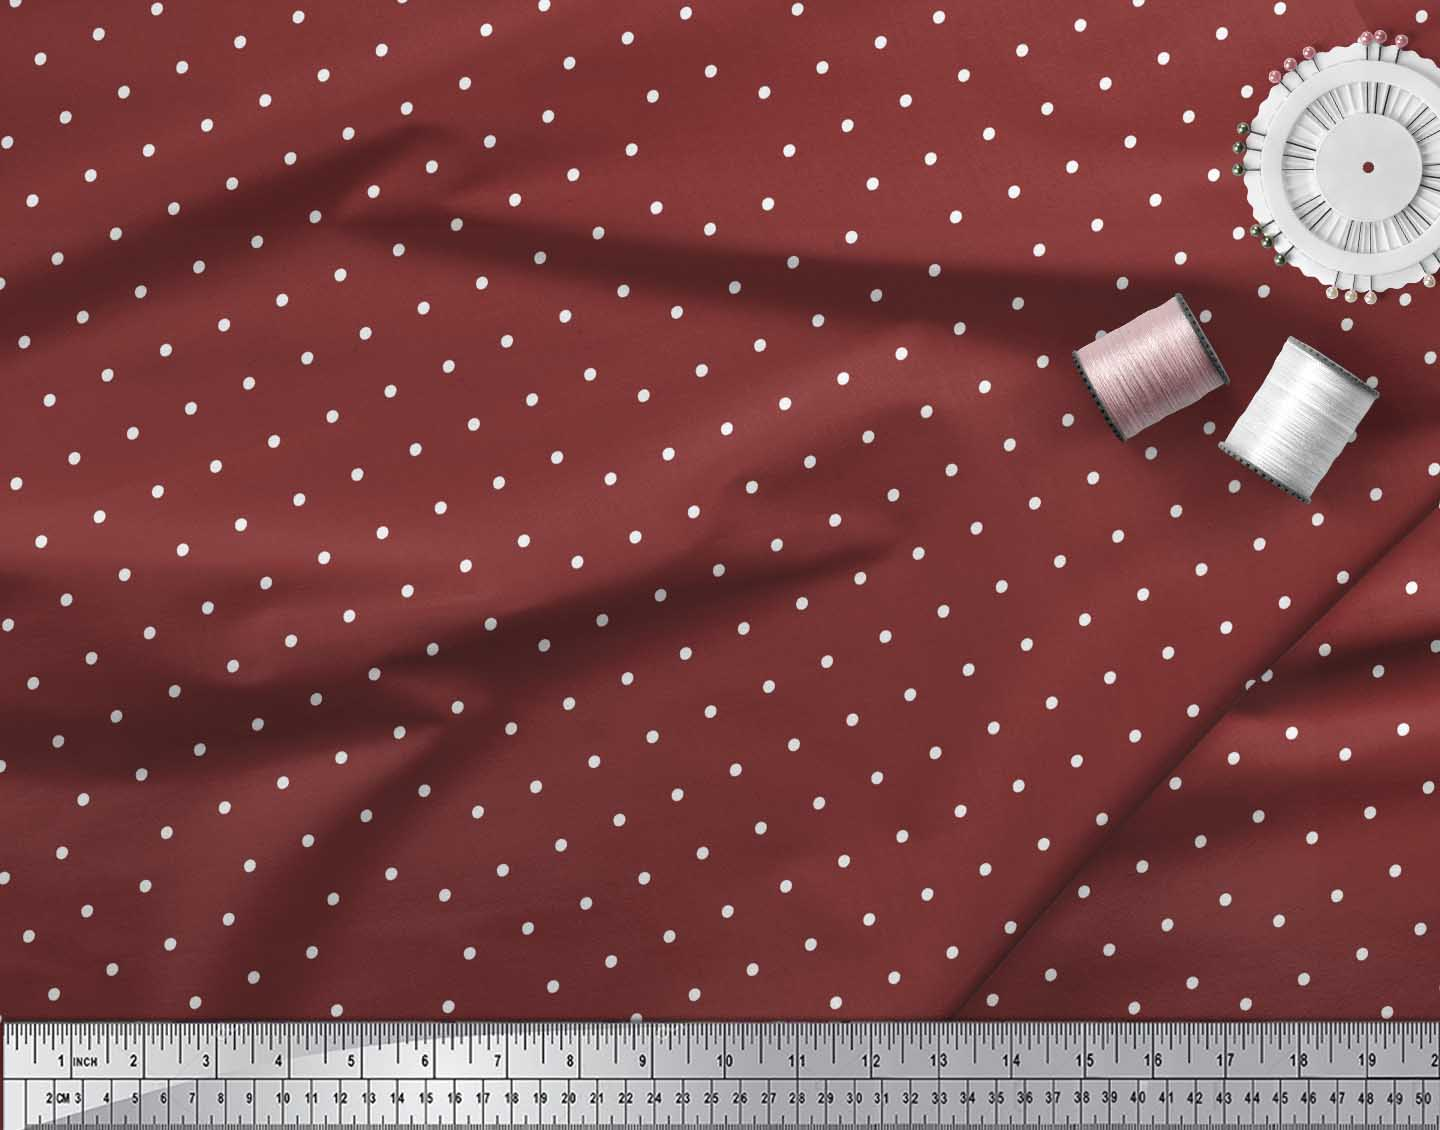 Soimoi-Red-Cotton-Poplin-Fabric-Dots-Dots-Print-Fabric-by-the-metre-DBh thumbnail 3